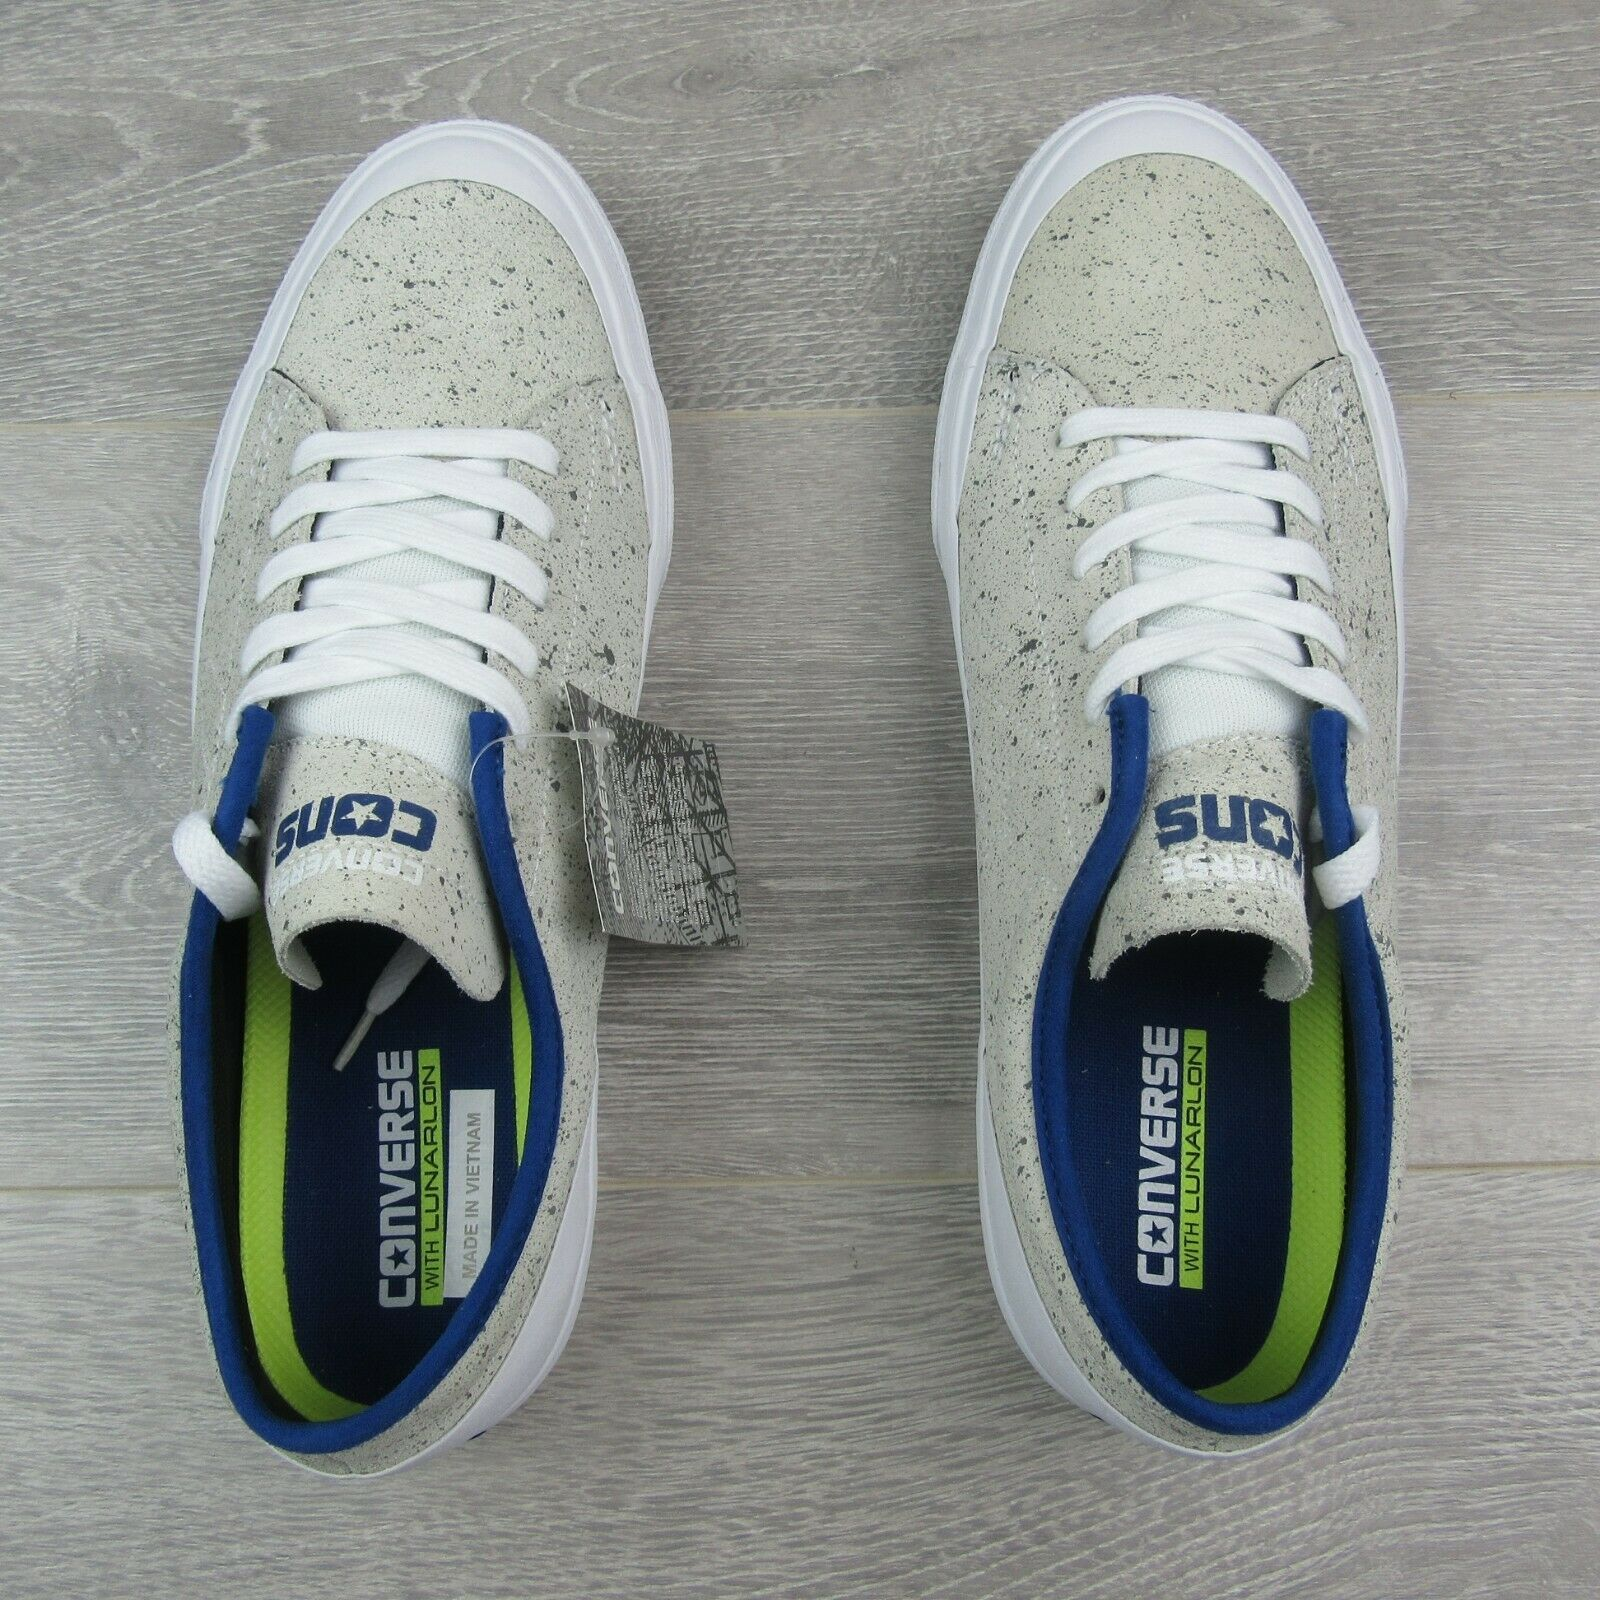 Converse Sumner OX Low White Blue Skate Shoes Mens Size 10.5 New 151429C